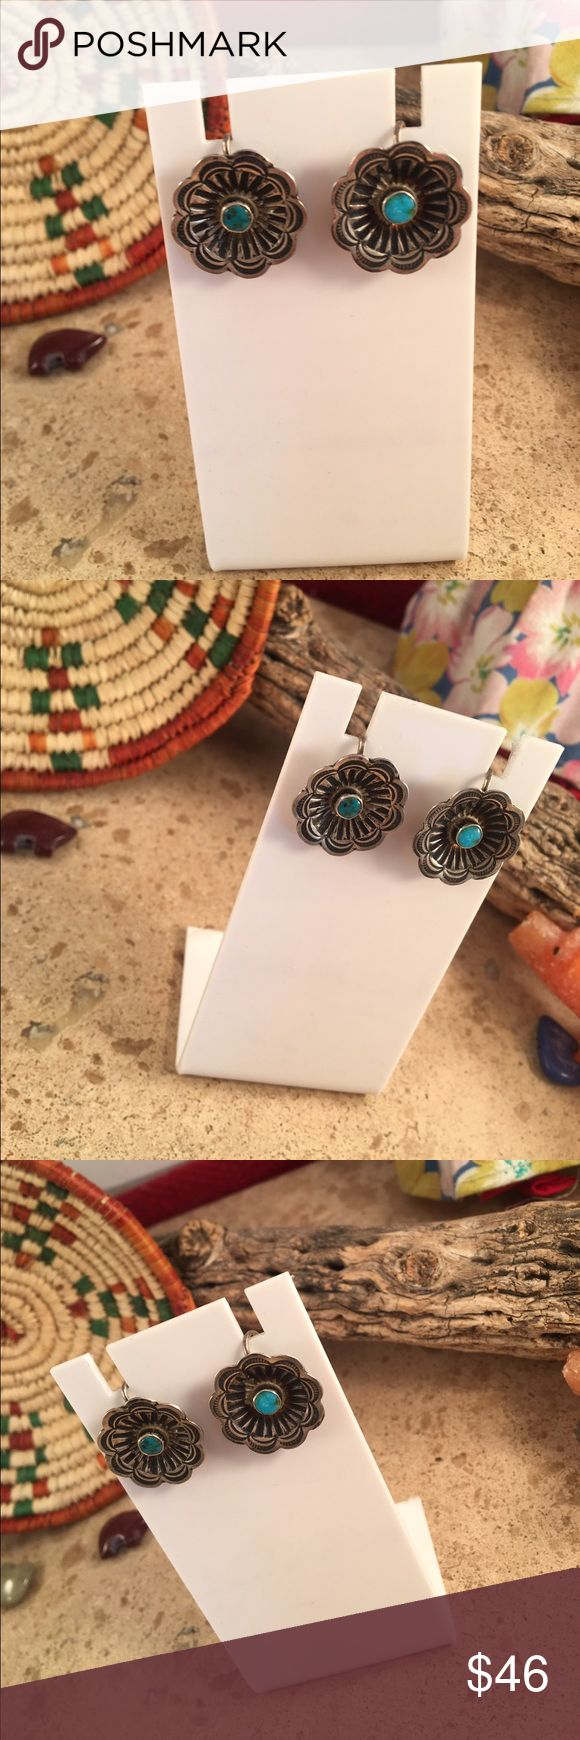 Vintage Navajo Turquoise Screw Back Earrings These are a pair of Vintage Navajo Sterling Silver and Turquoise flower screw back earrings. They are right at 3/4 of an inch wide. They are in excellent condition.   Thanks for looking please contact me with any questions. Jewelry Earrings